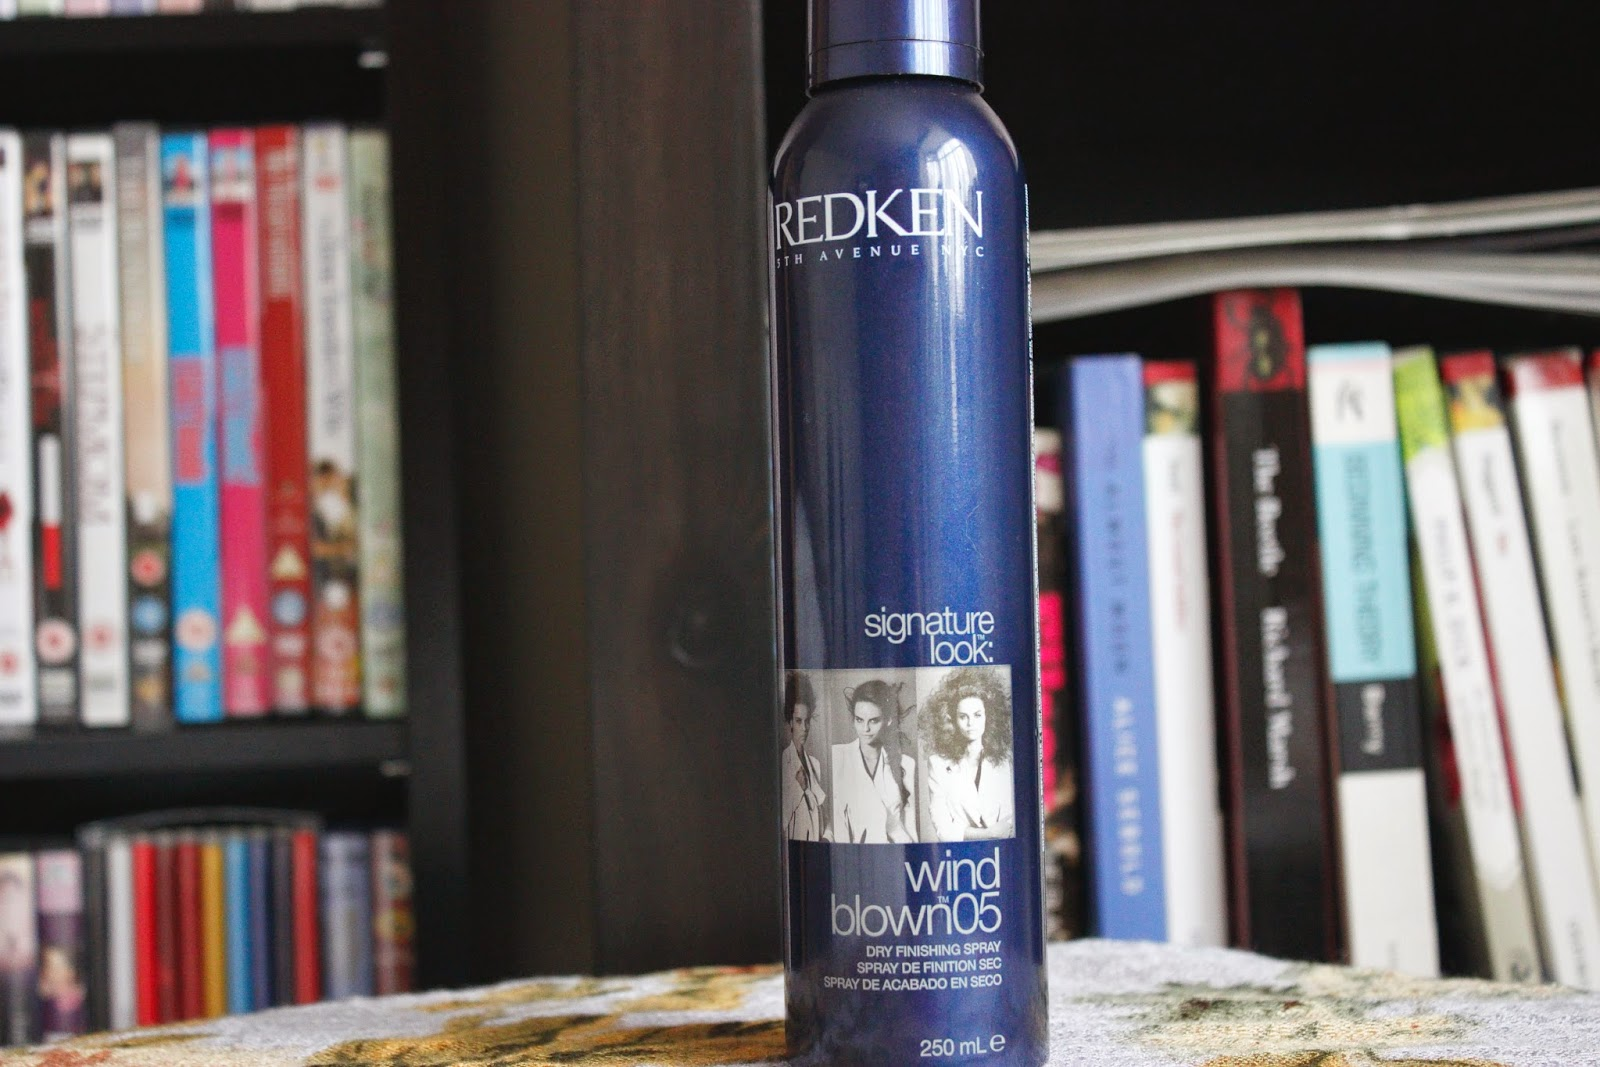 Picture of Redken Signature Look: Wind Blown 05 Dry Finishing Spray